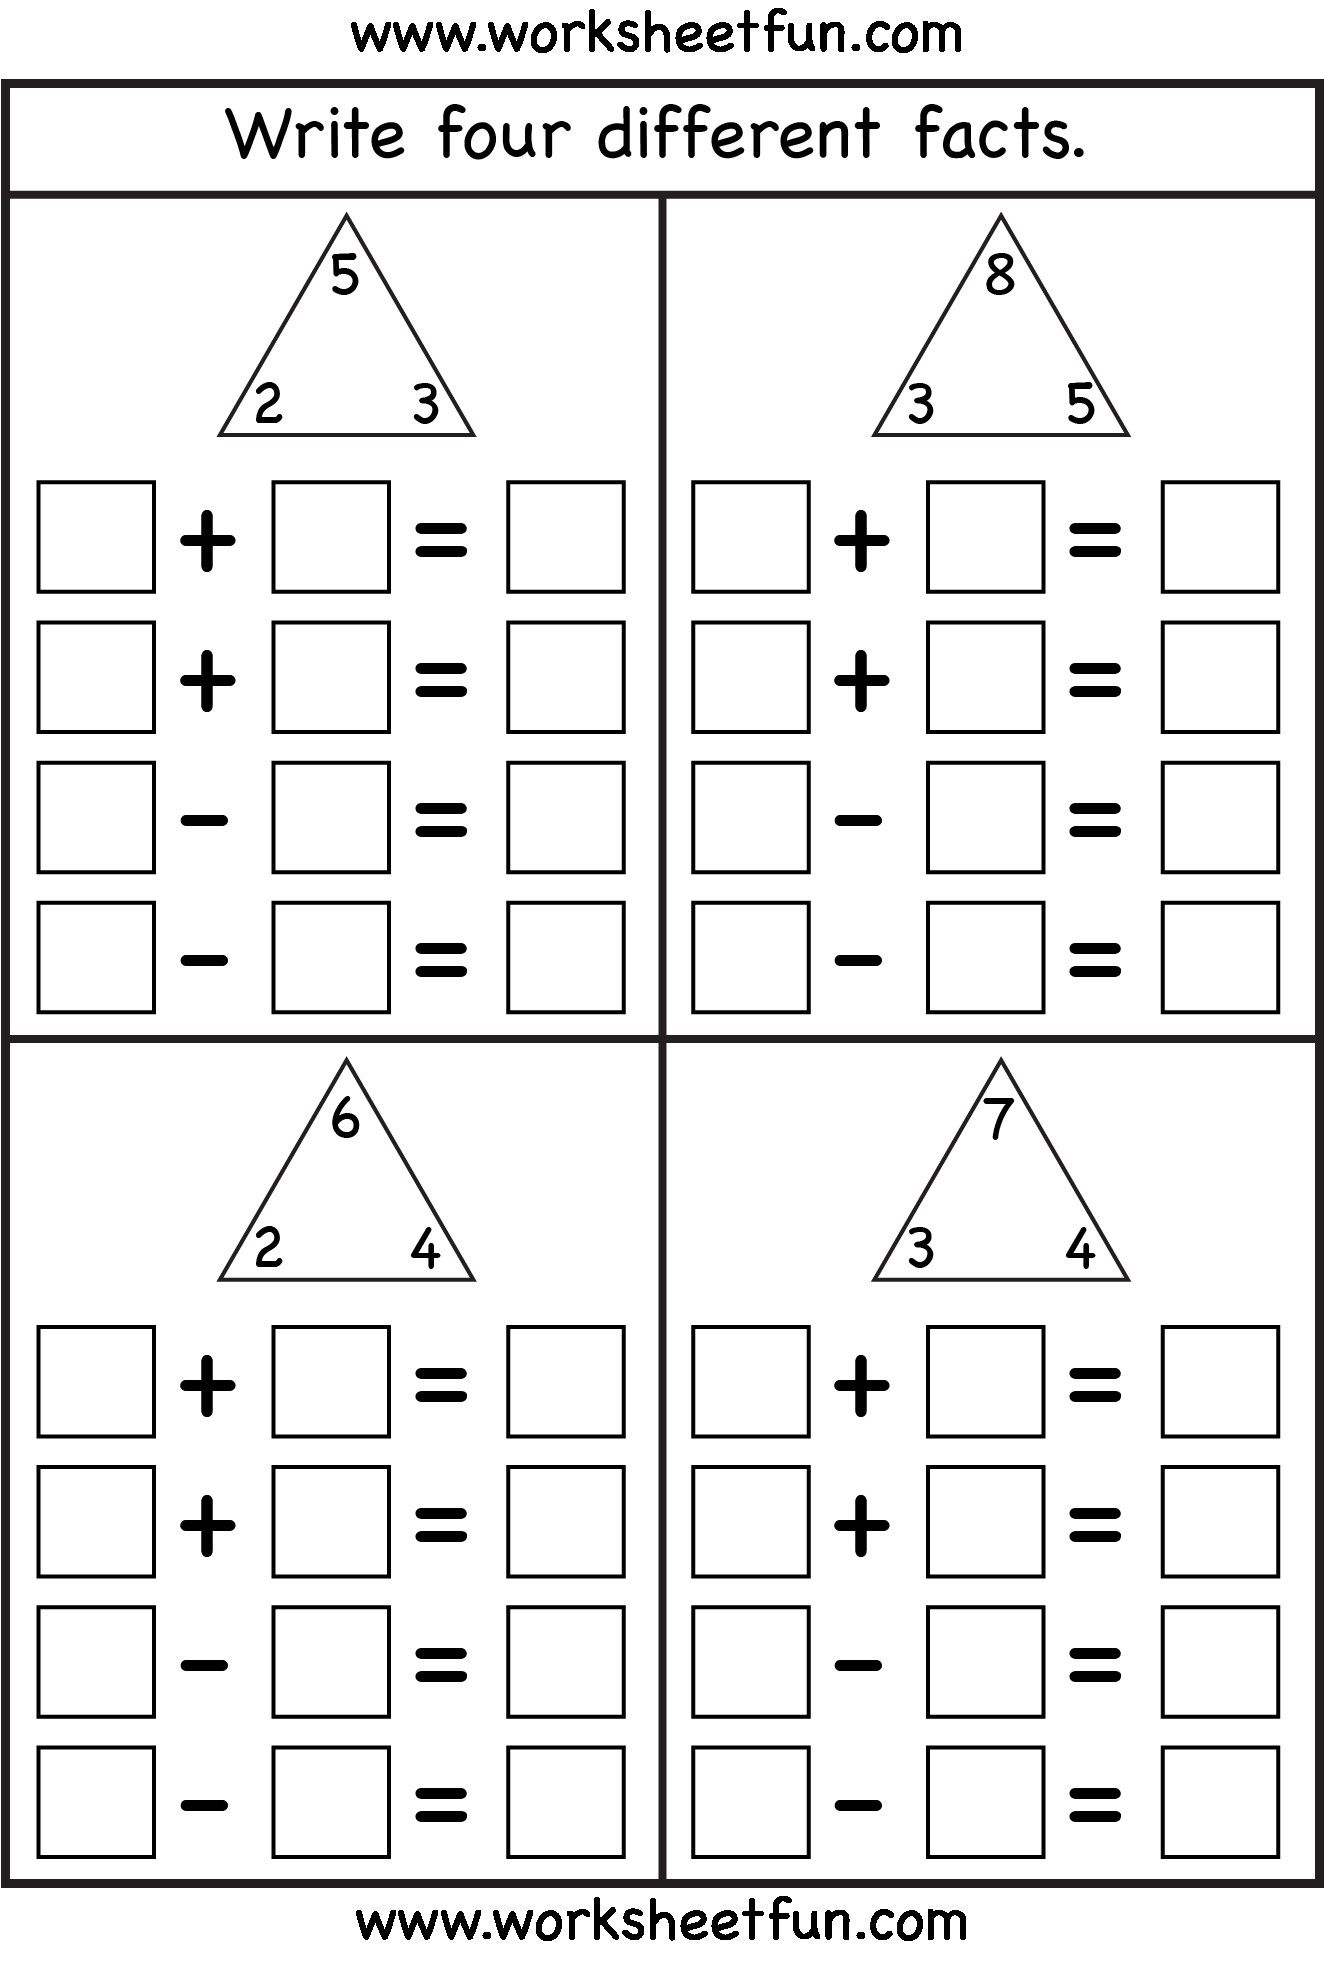 5 Fact Triangle Worksheets Print In